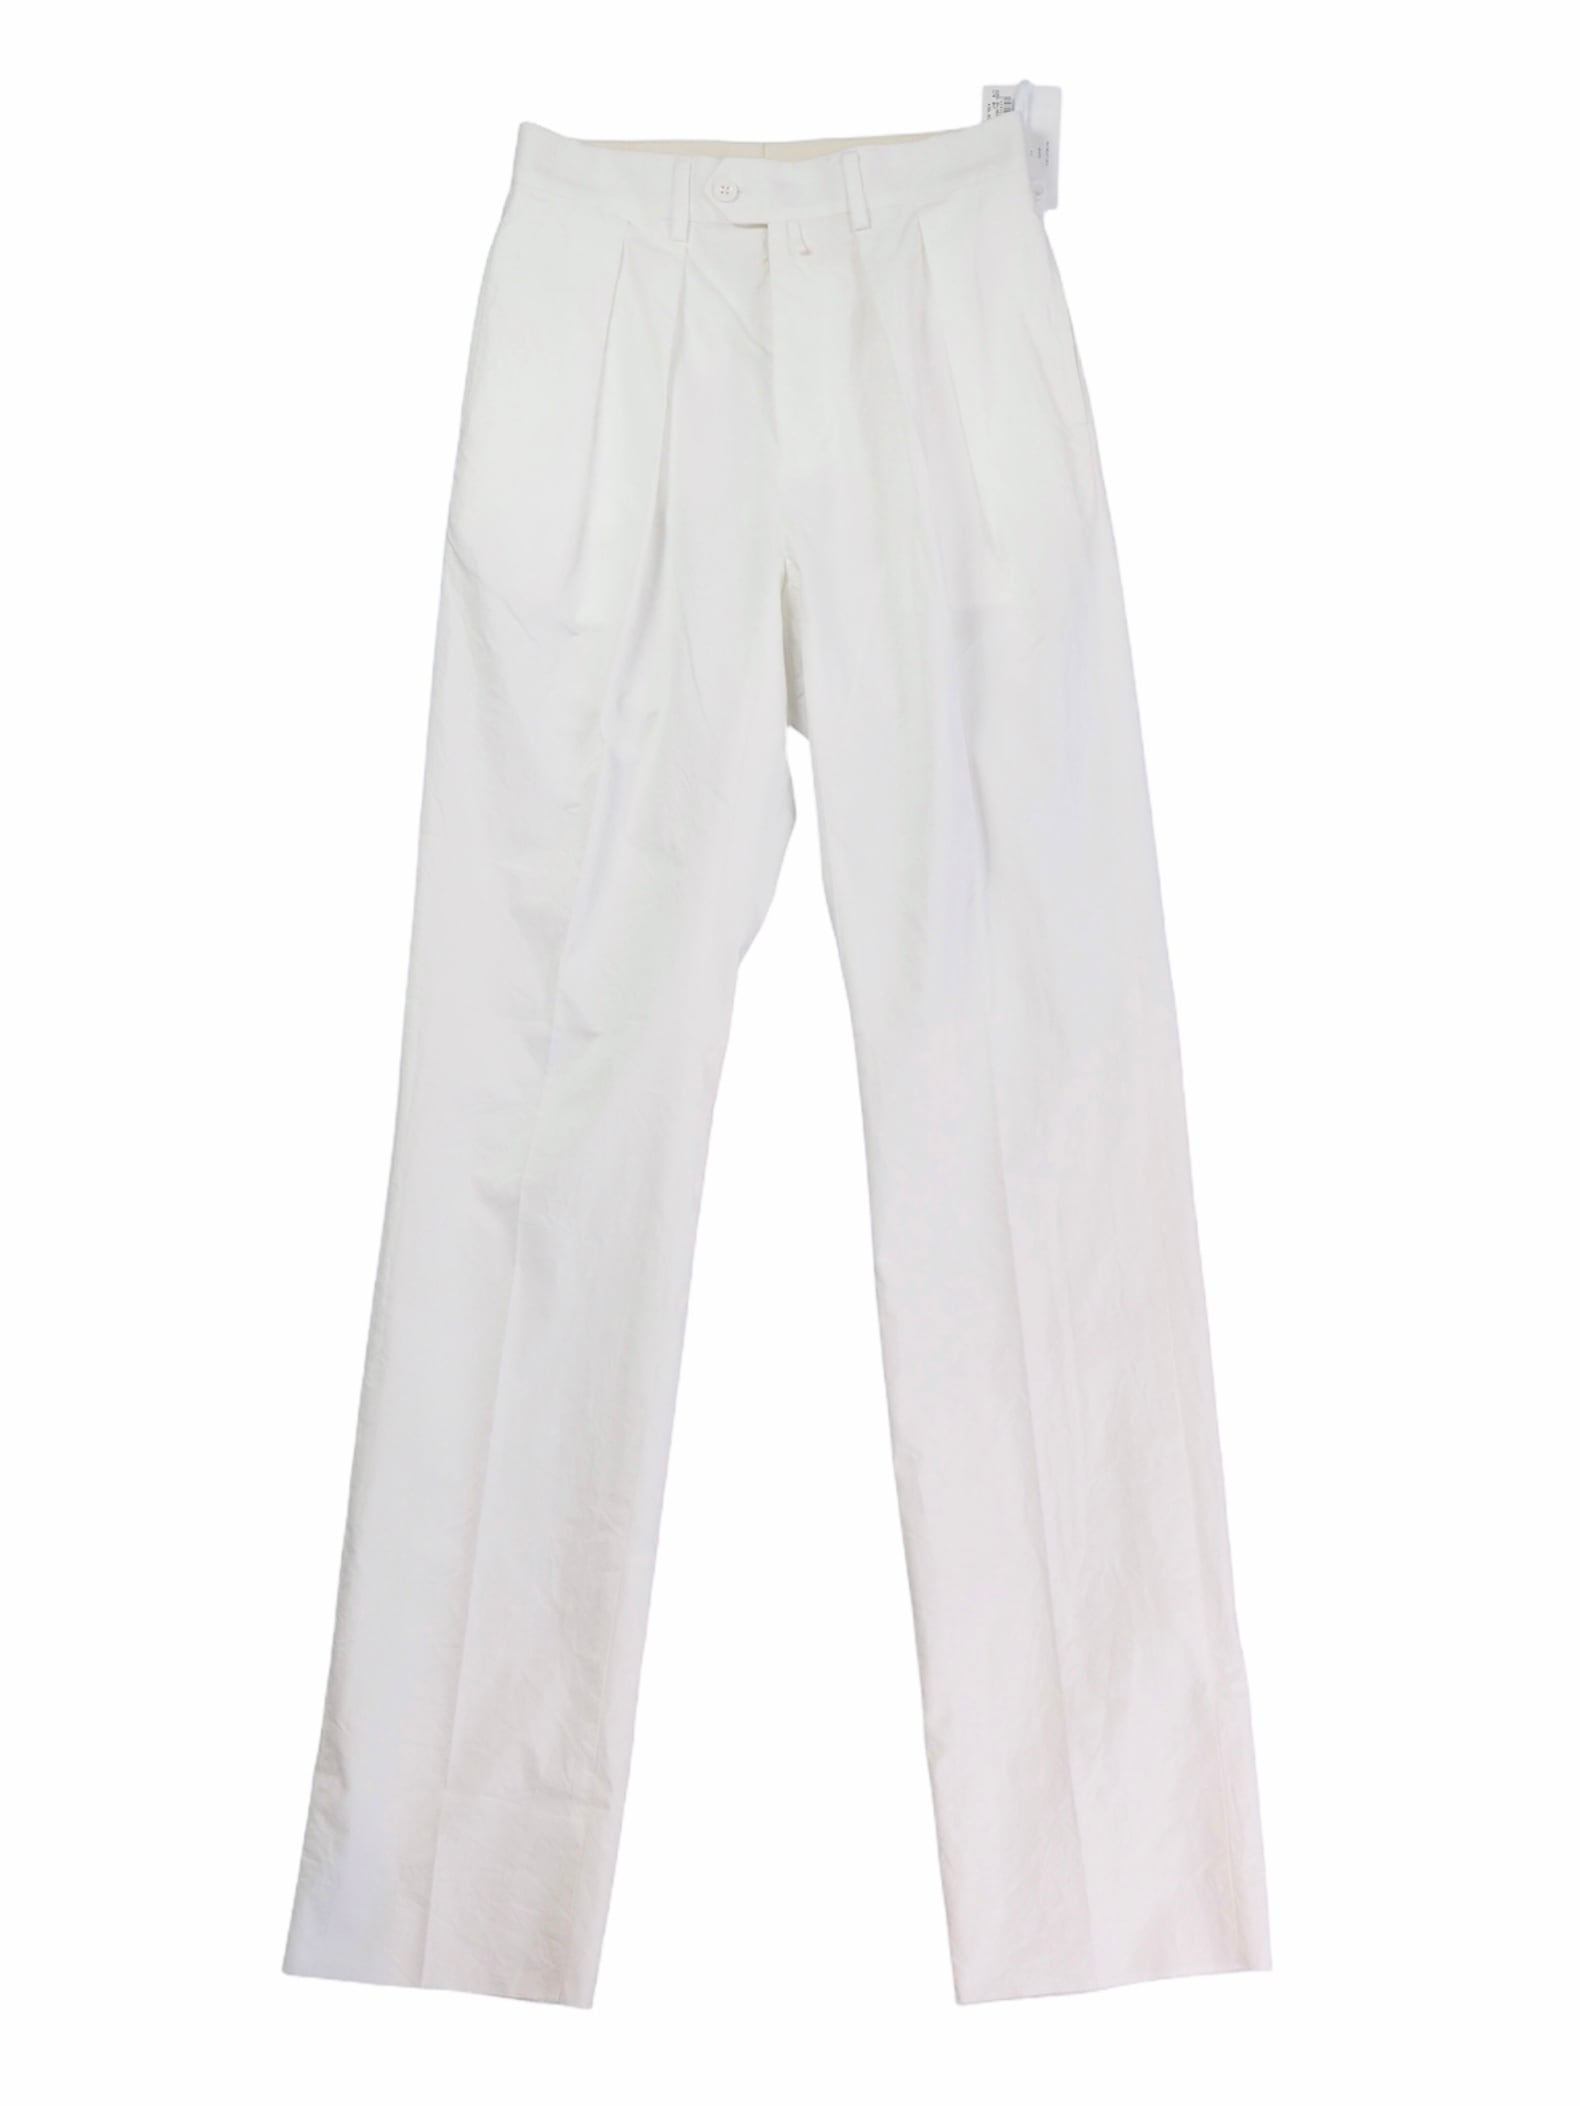 【S H】NEAT FOR SH EXCLUSIVE TROUSERS